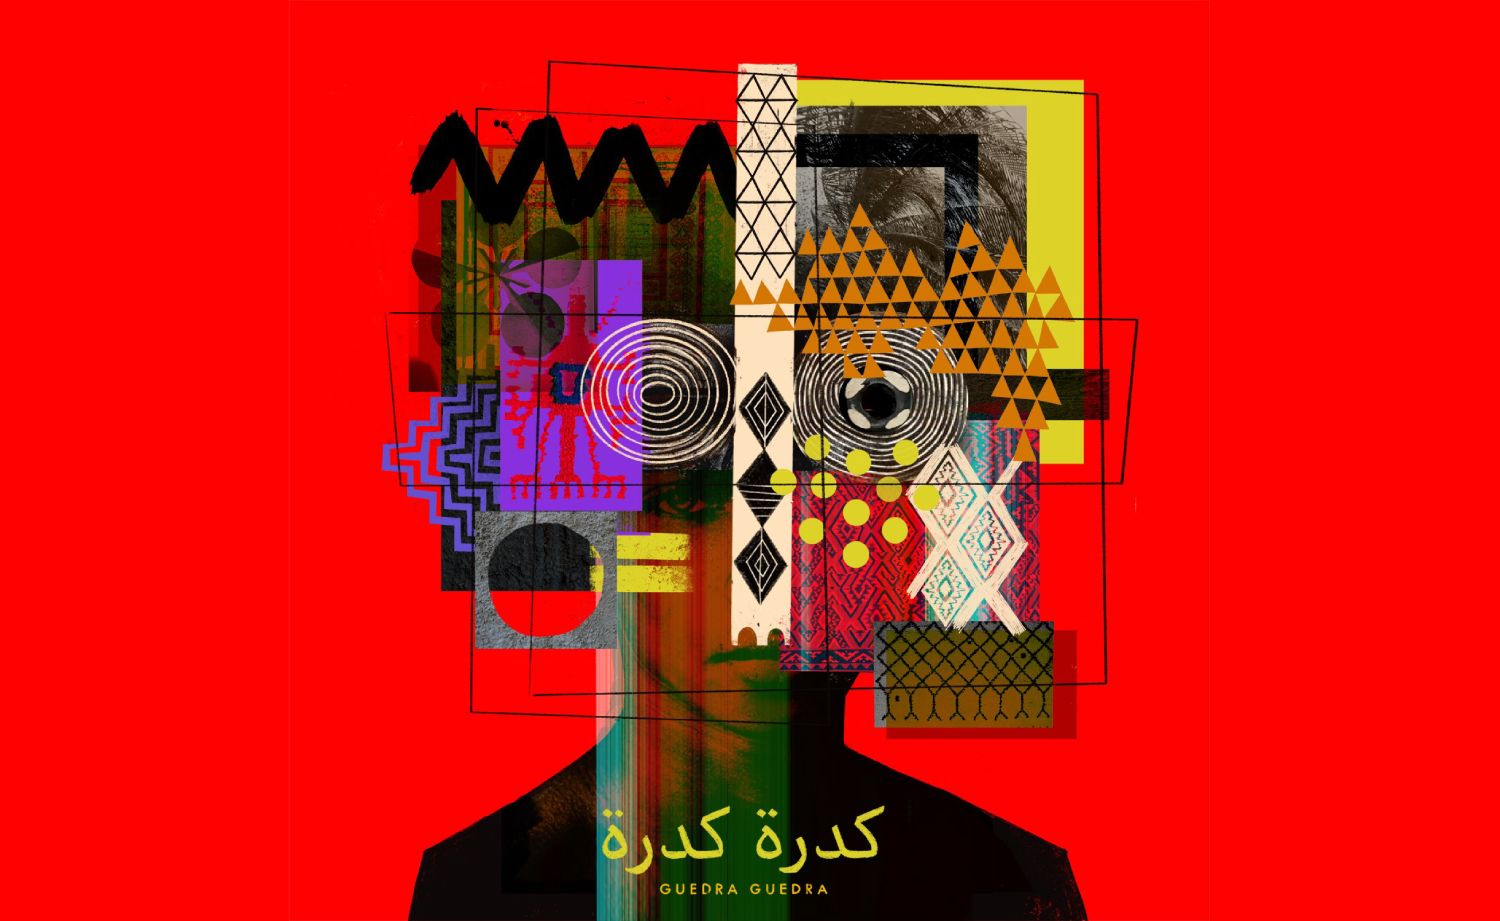 Morocco's Guedra Guedra Transcends Genre in Debut EP 'Son of Sun'